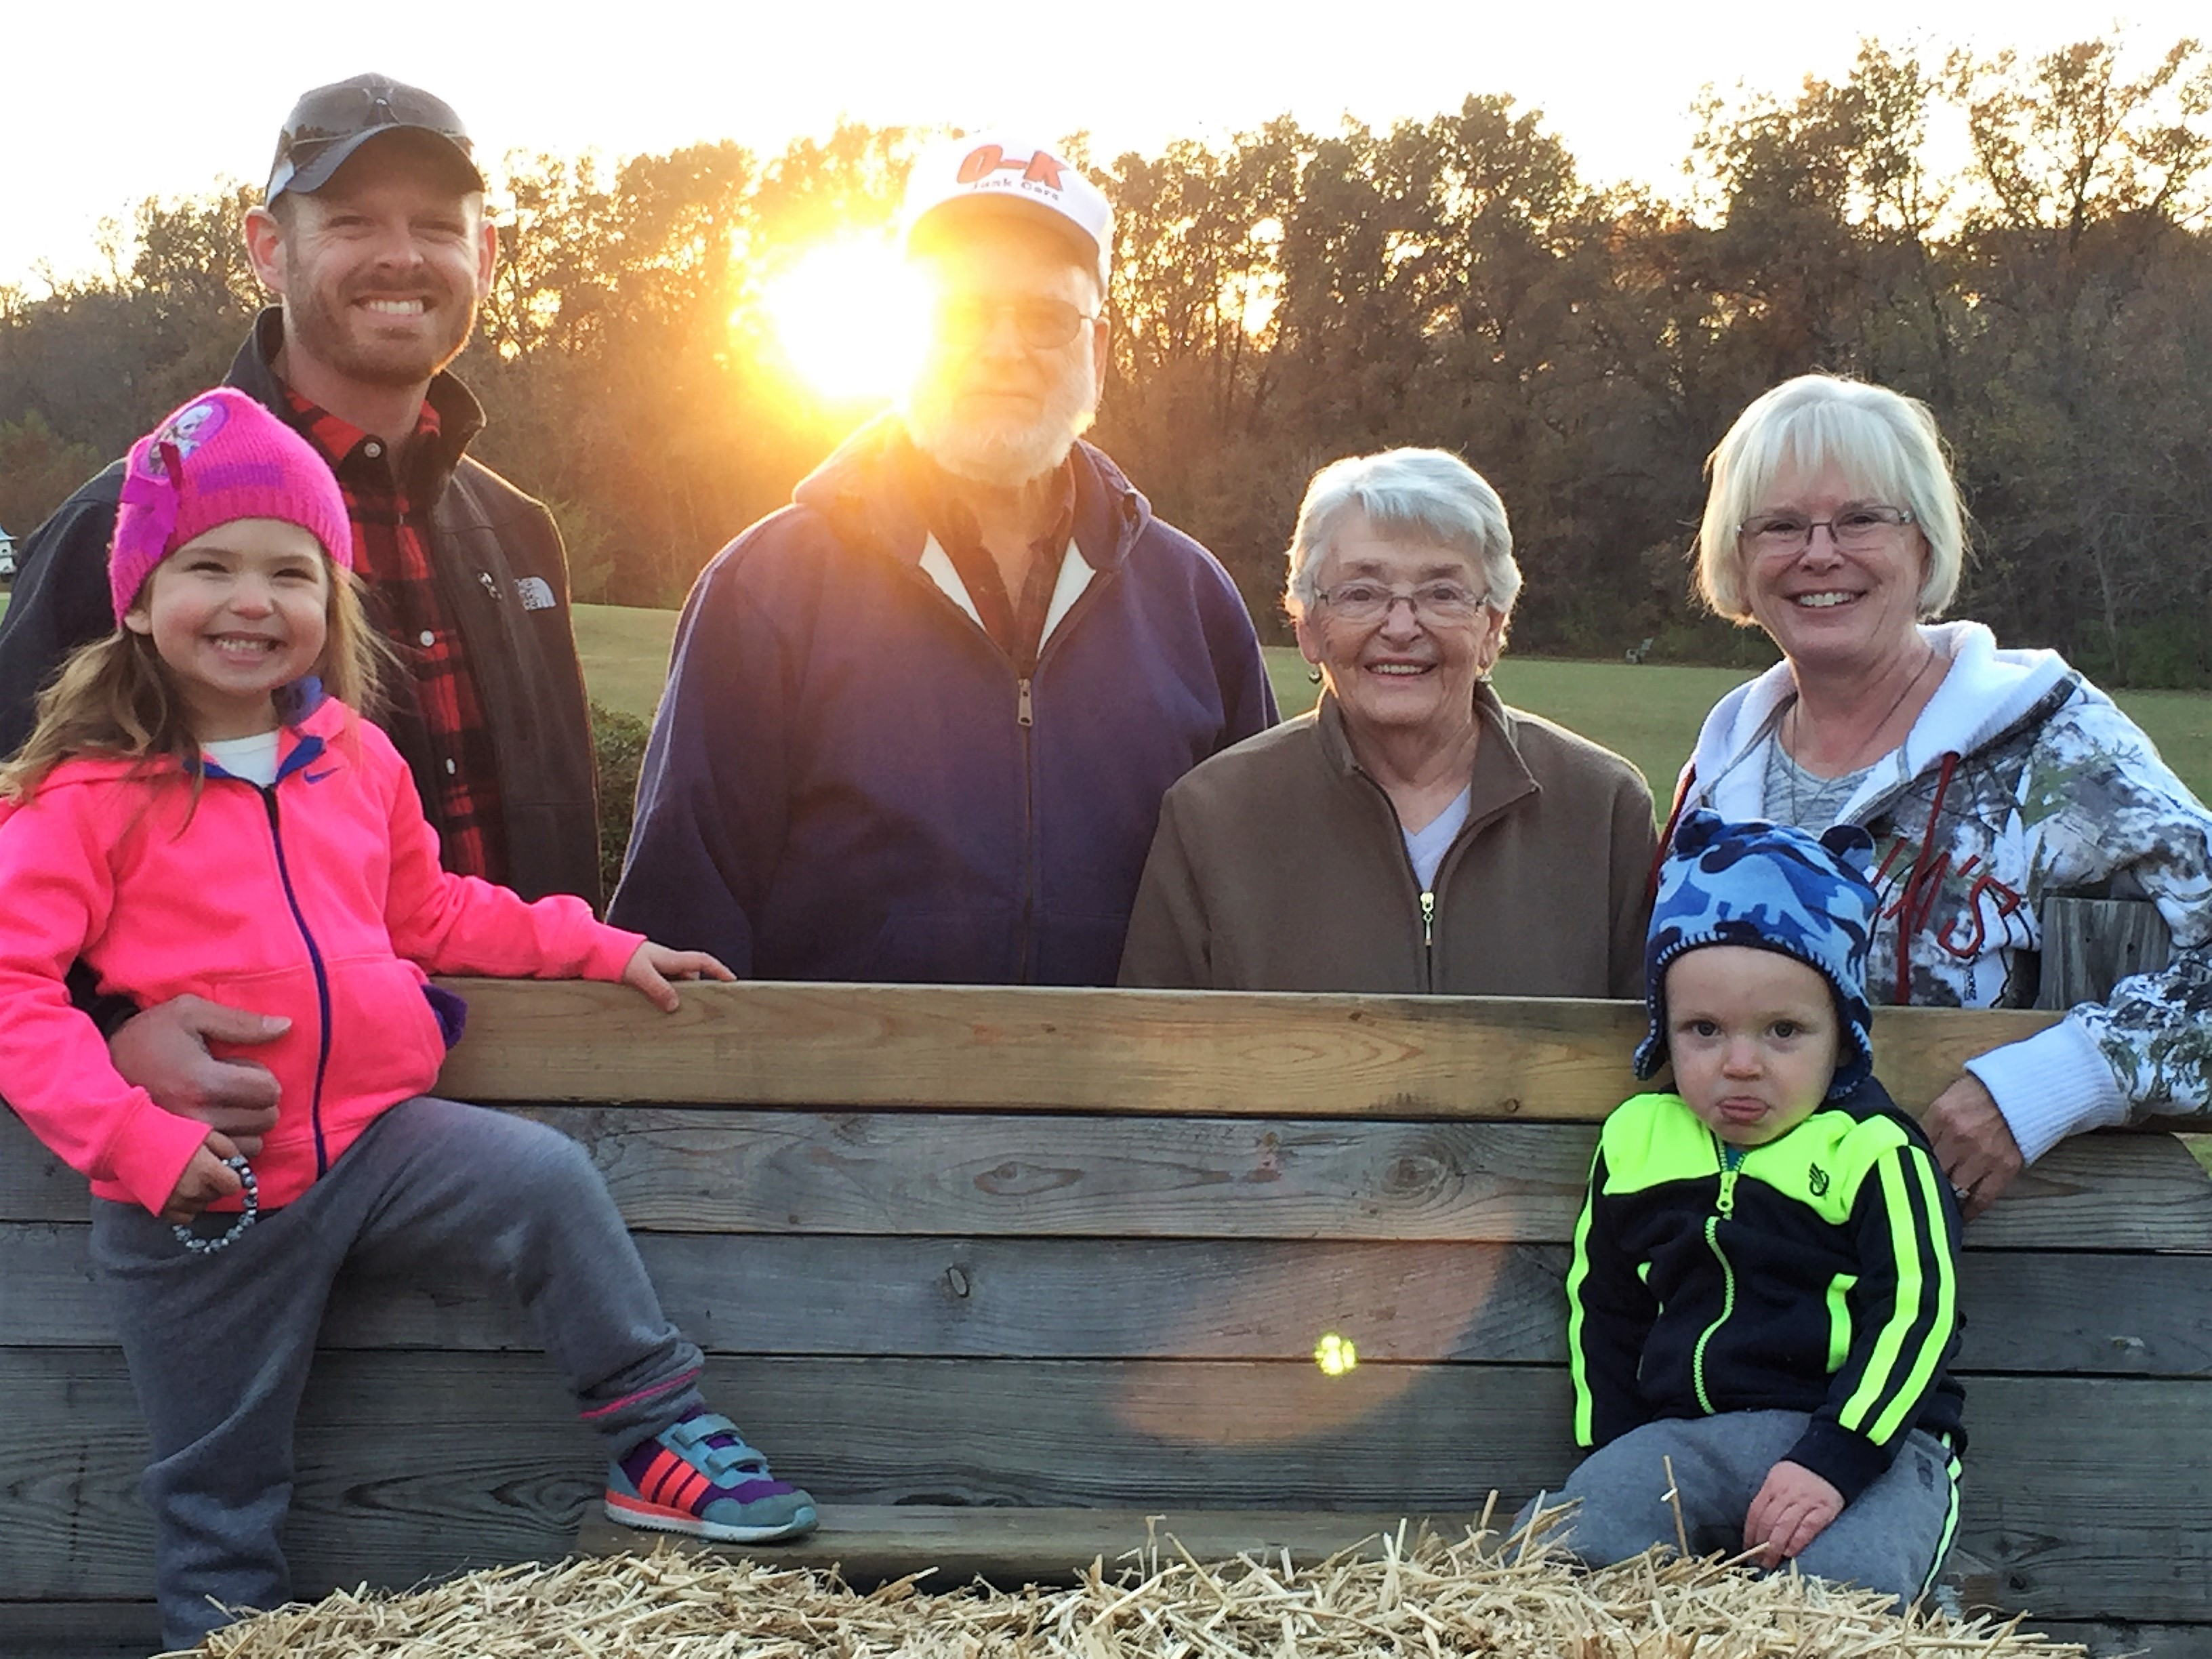 Family hayride to pick pears. Grandparents are special.